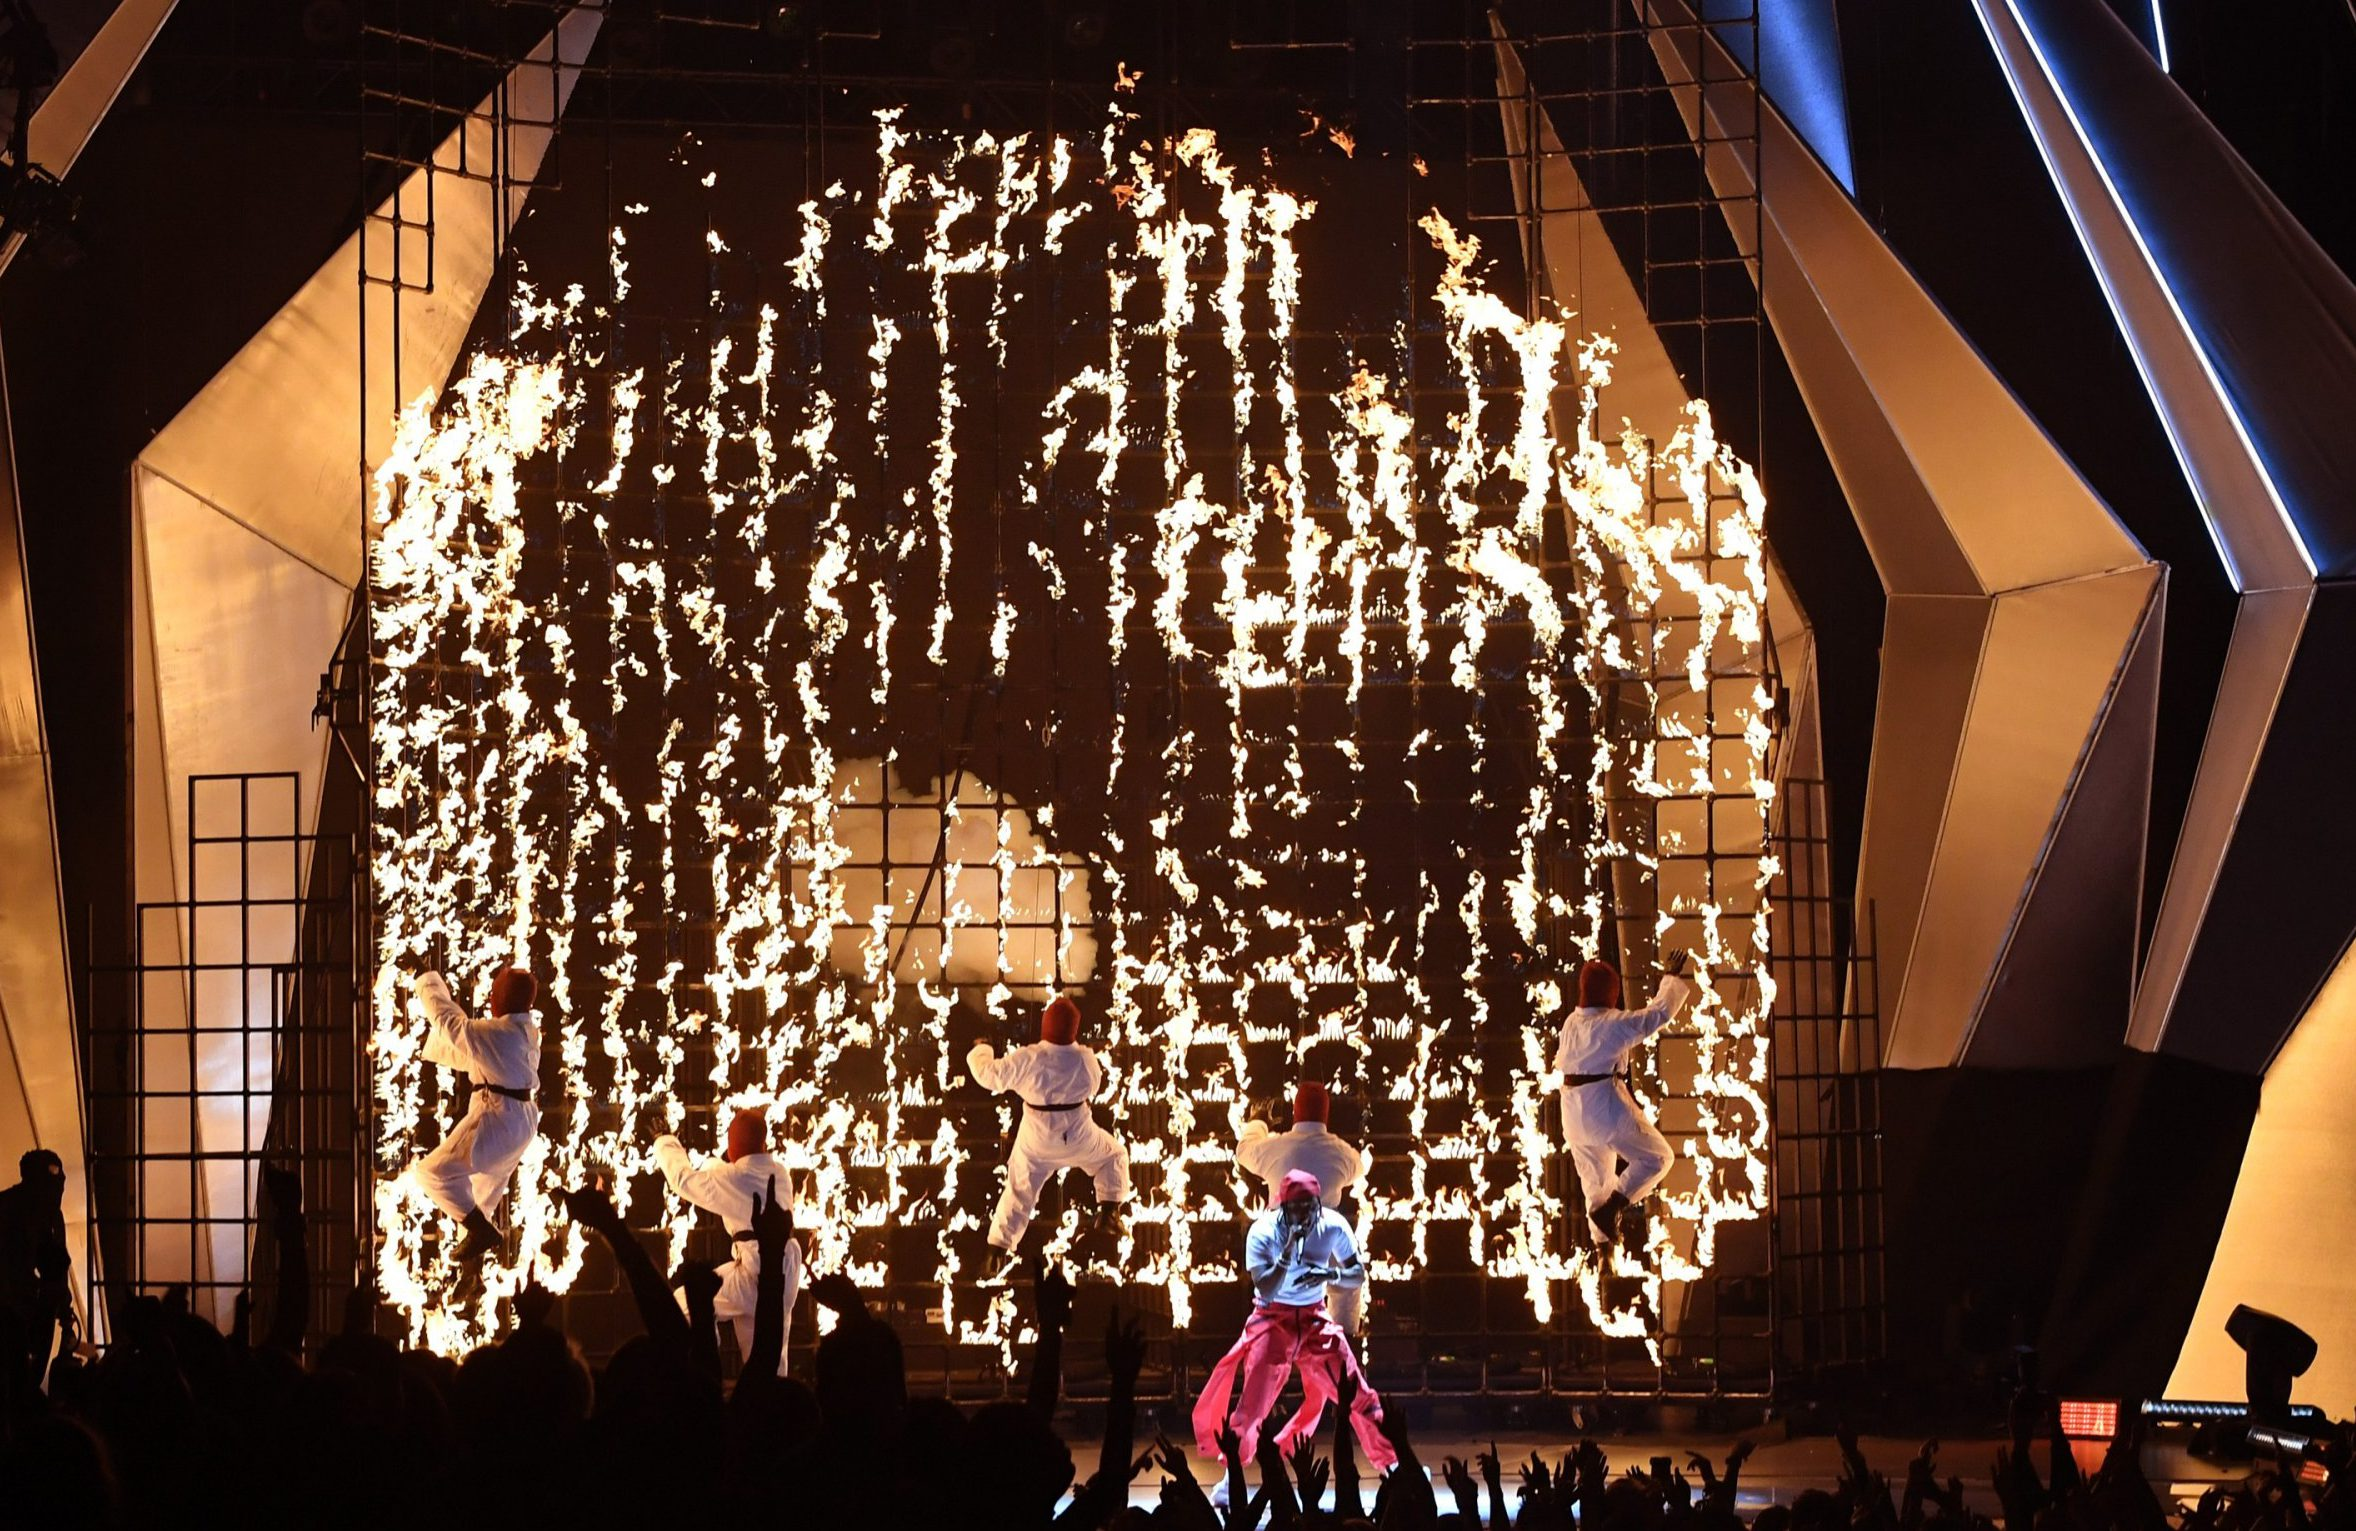 Kendrick Lamar's flaming ninja performance won the MTV VMAs before it started